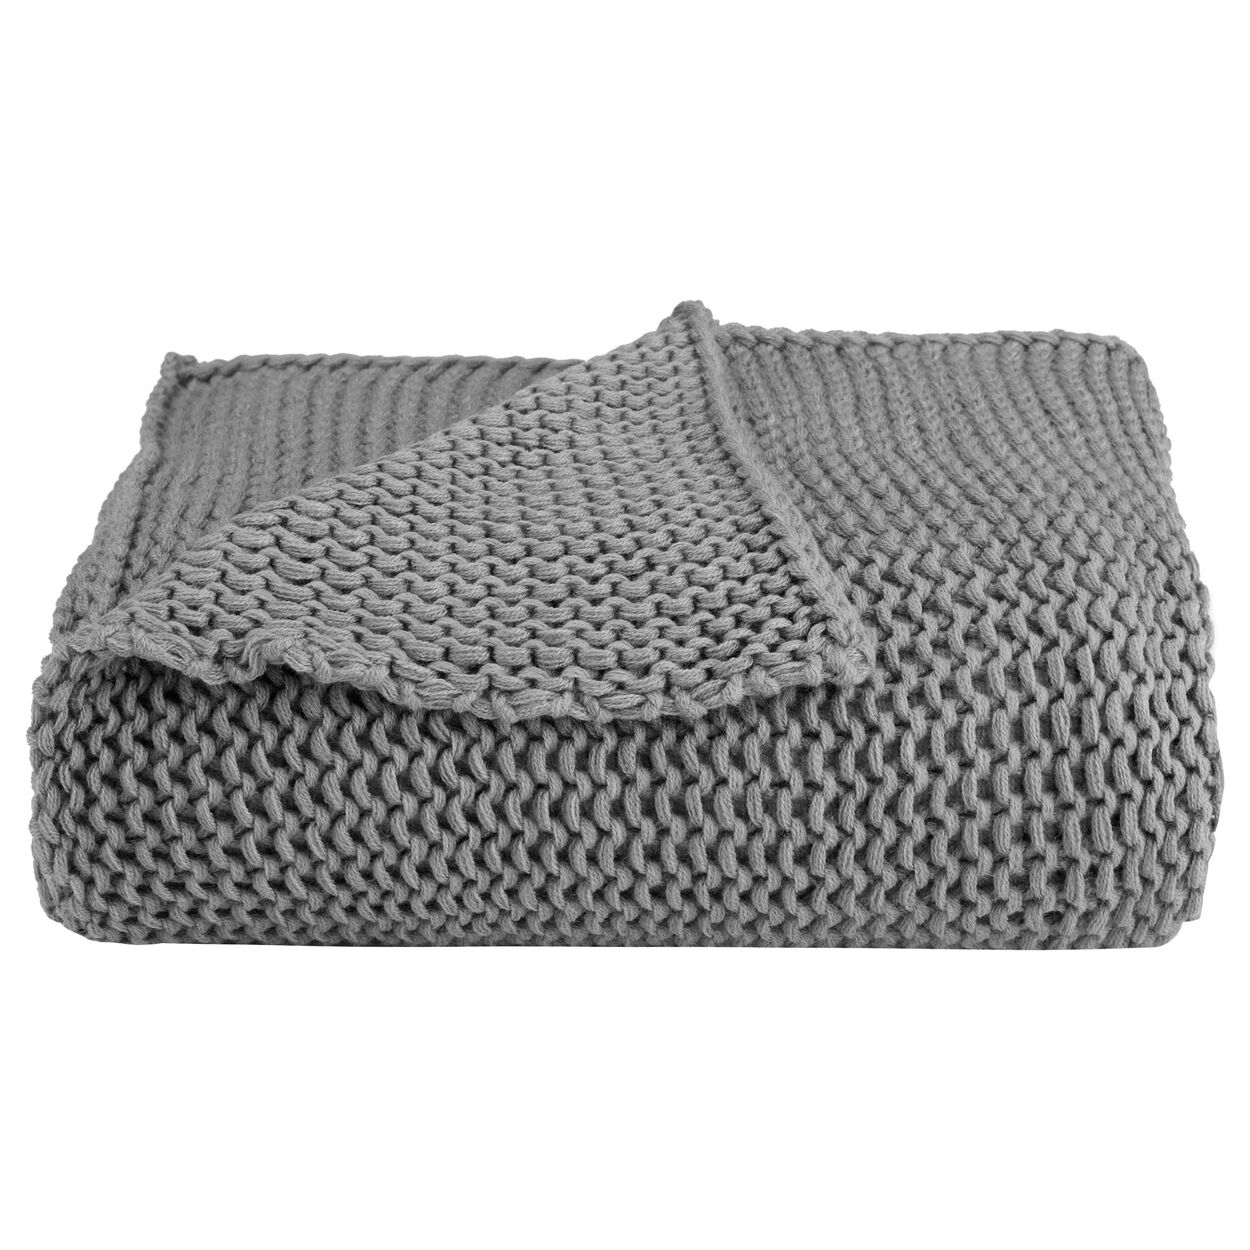 "Daly Knit Throw 50"" X 60"""